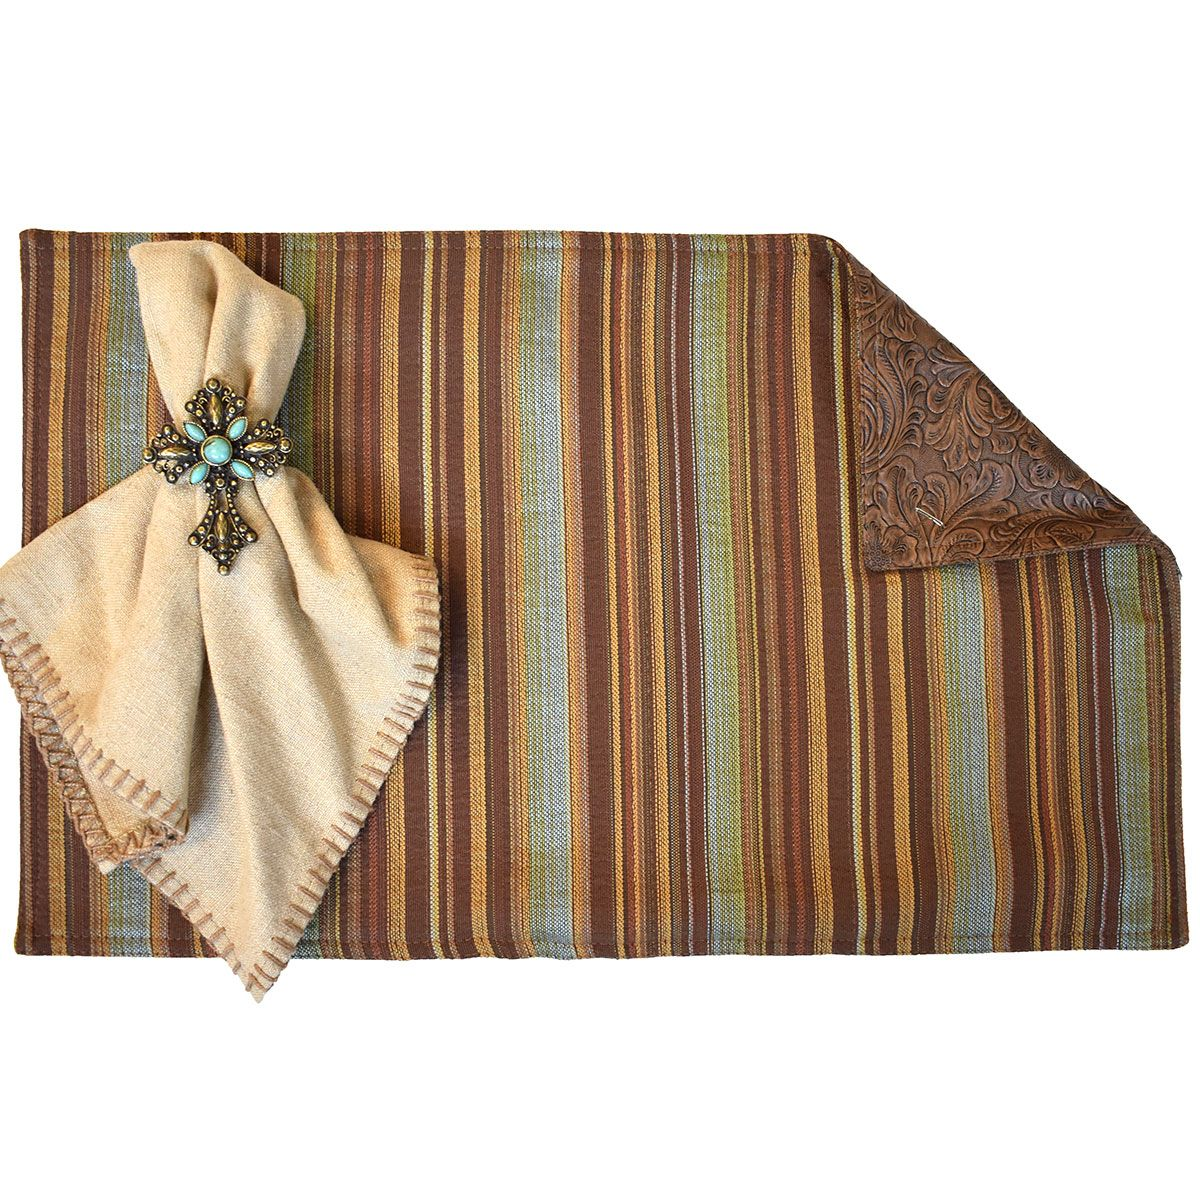 Heritage & Rustica Clay Reversible Placemats - Set of 4